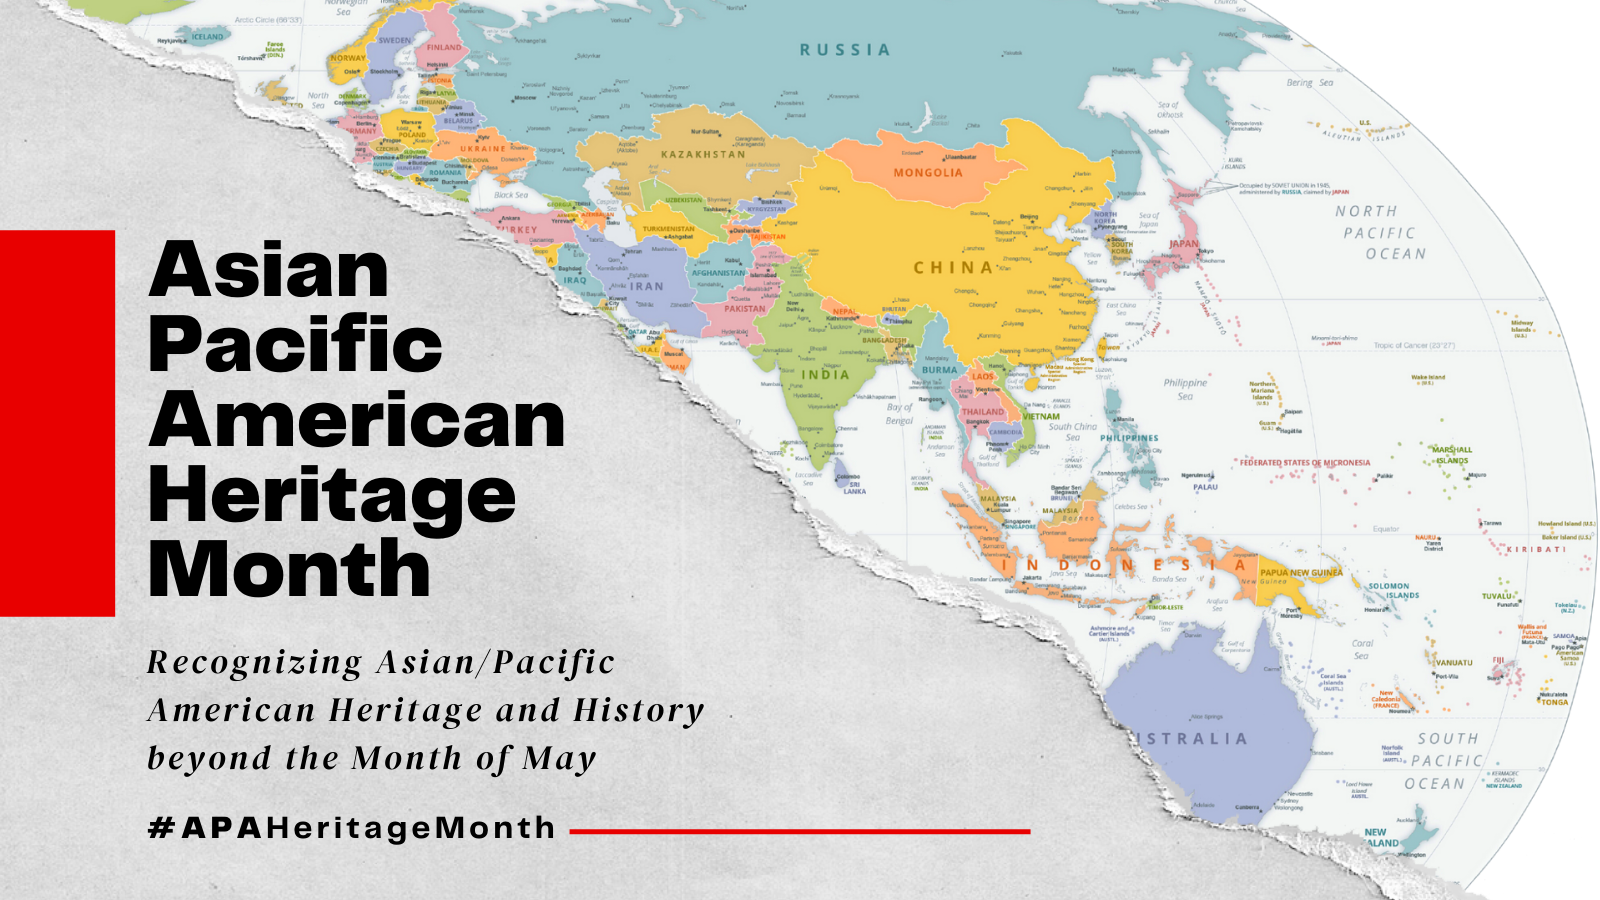 APA Heritage Month: History and Recognition